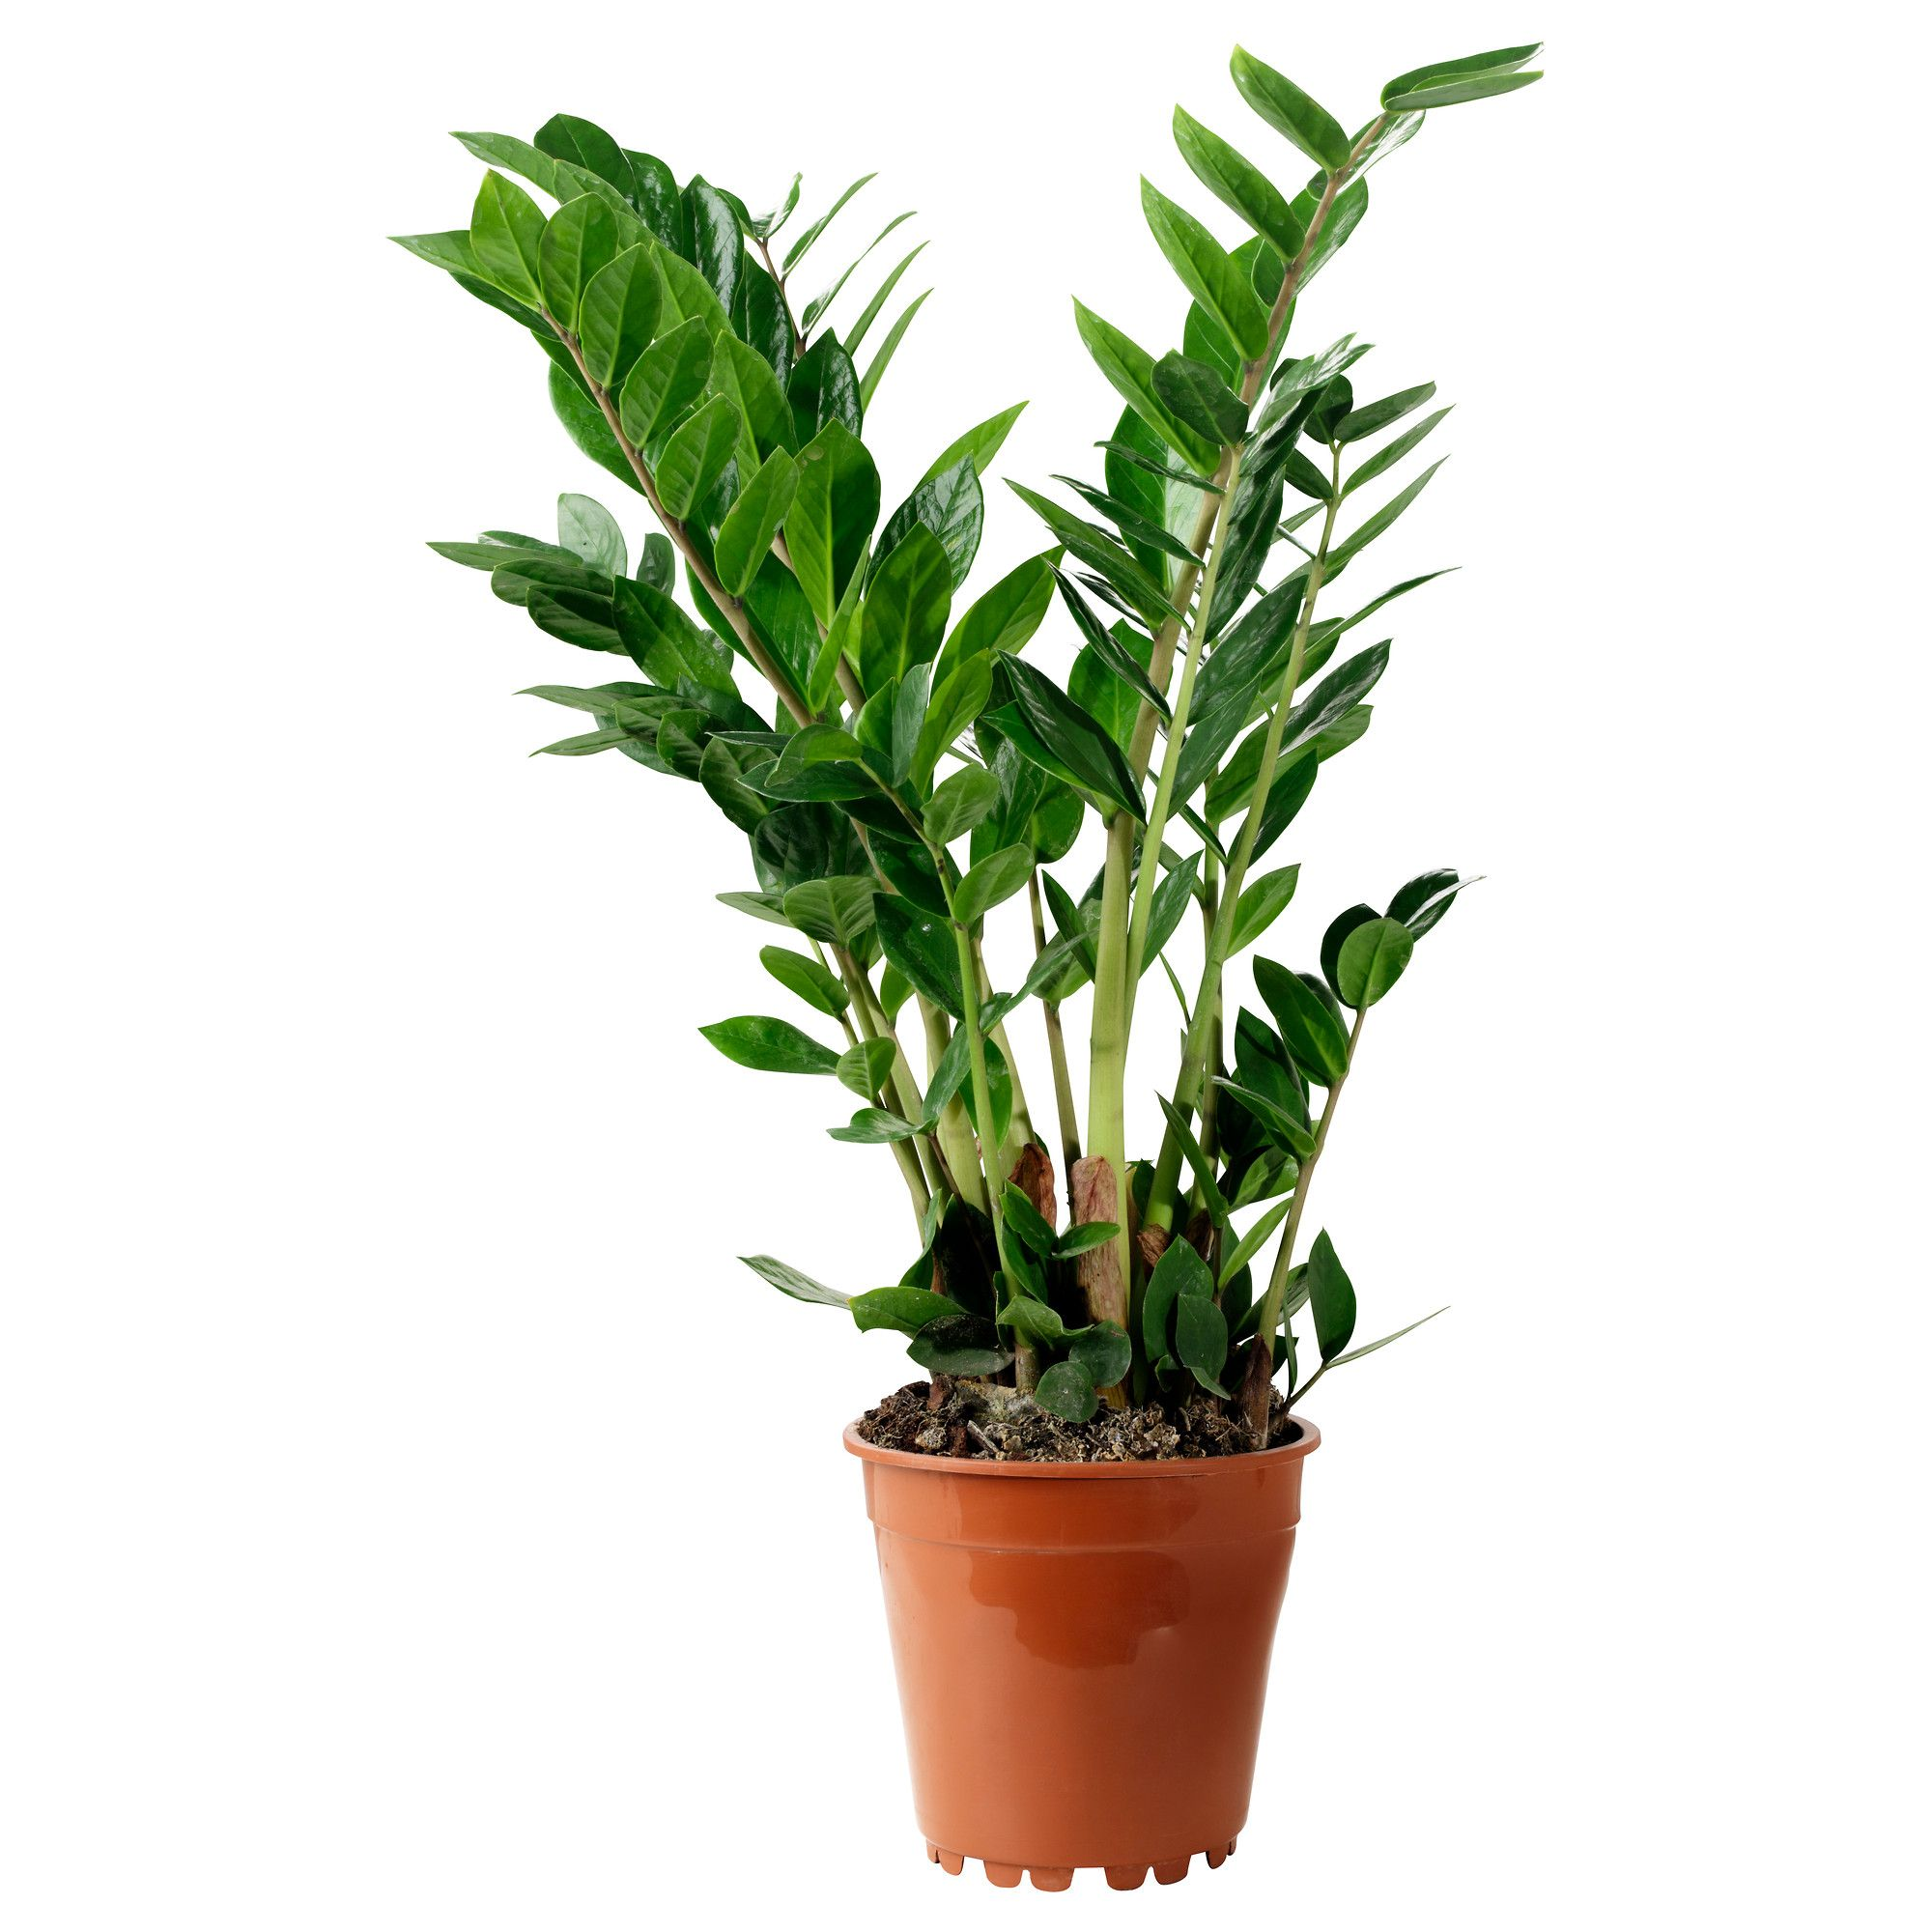 Ikea Planters Large Zamioculcas Potted Plant Aroid Palm 17 Cm Large Indoor